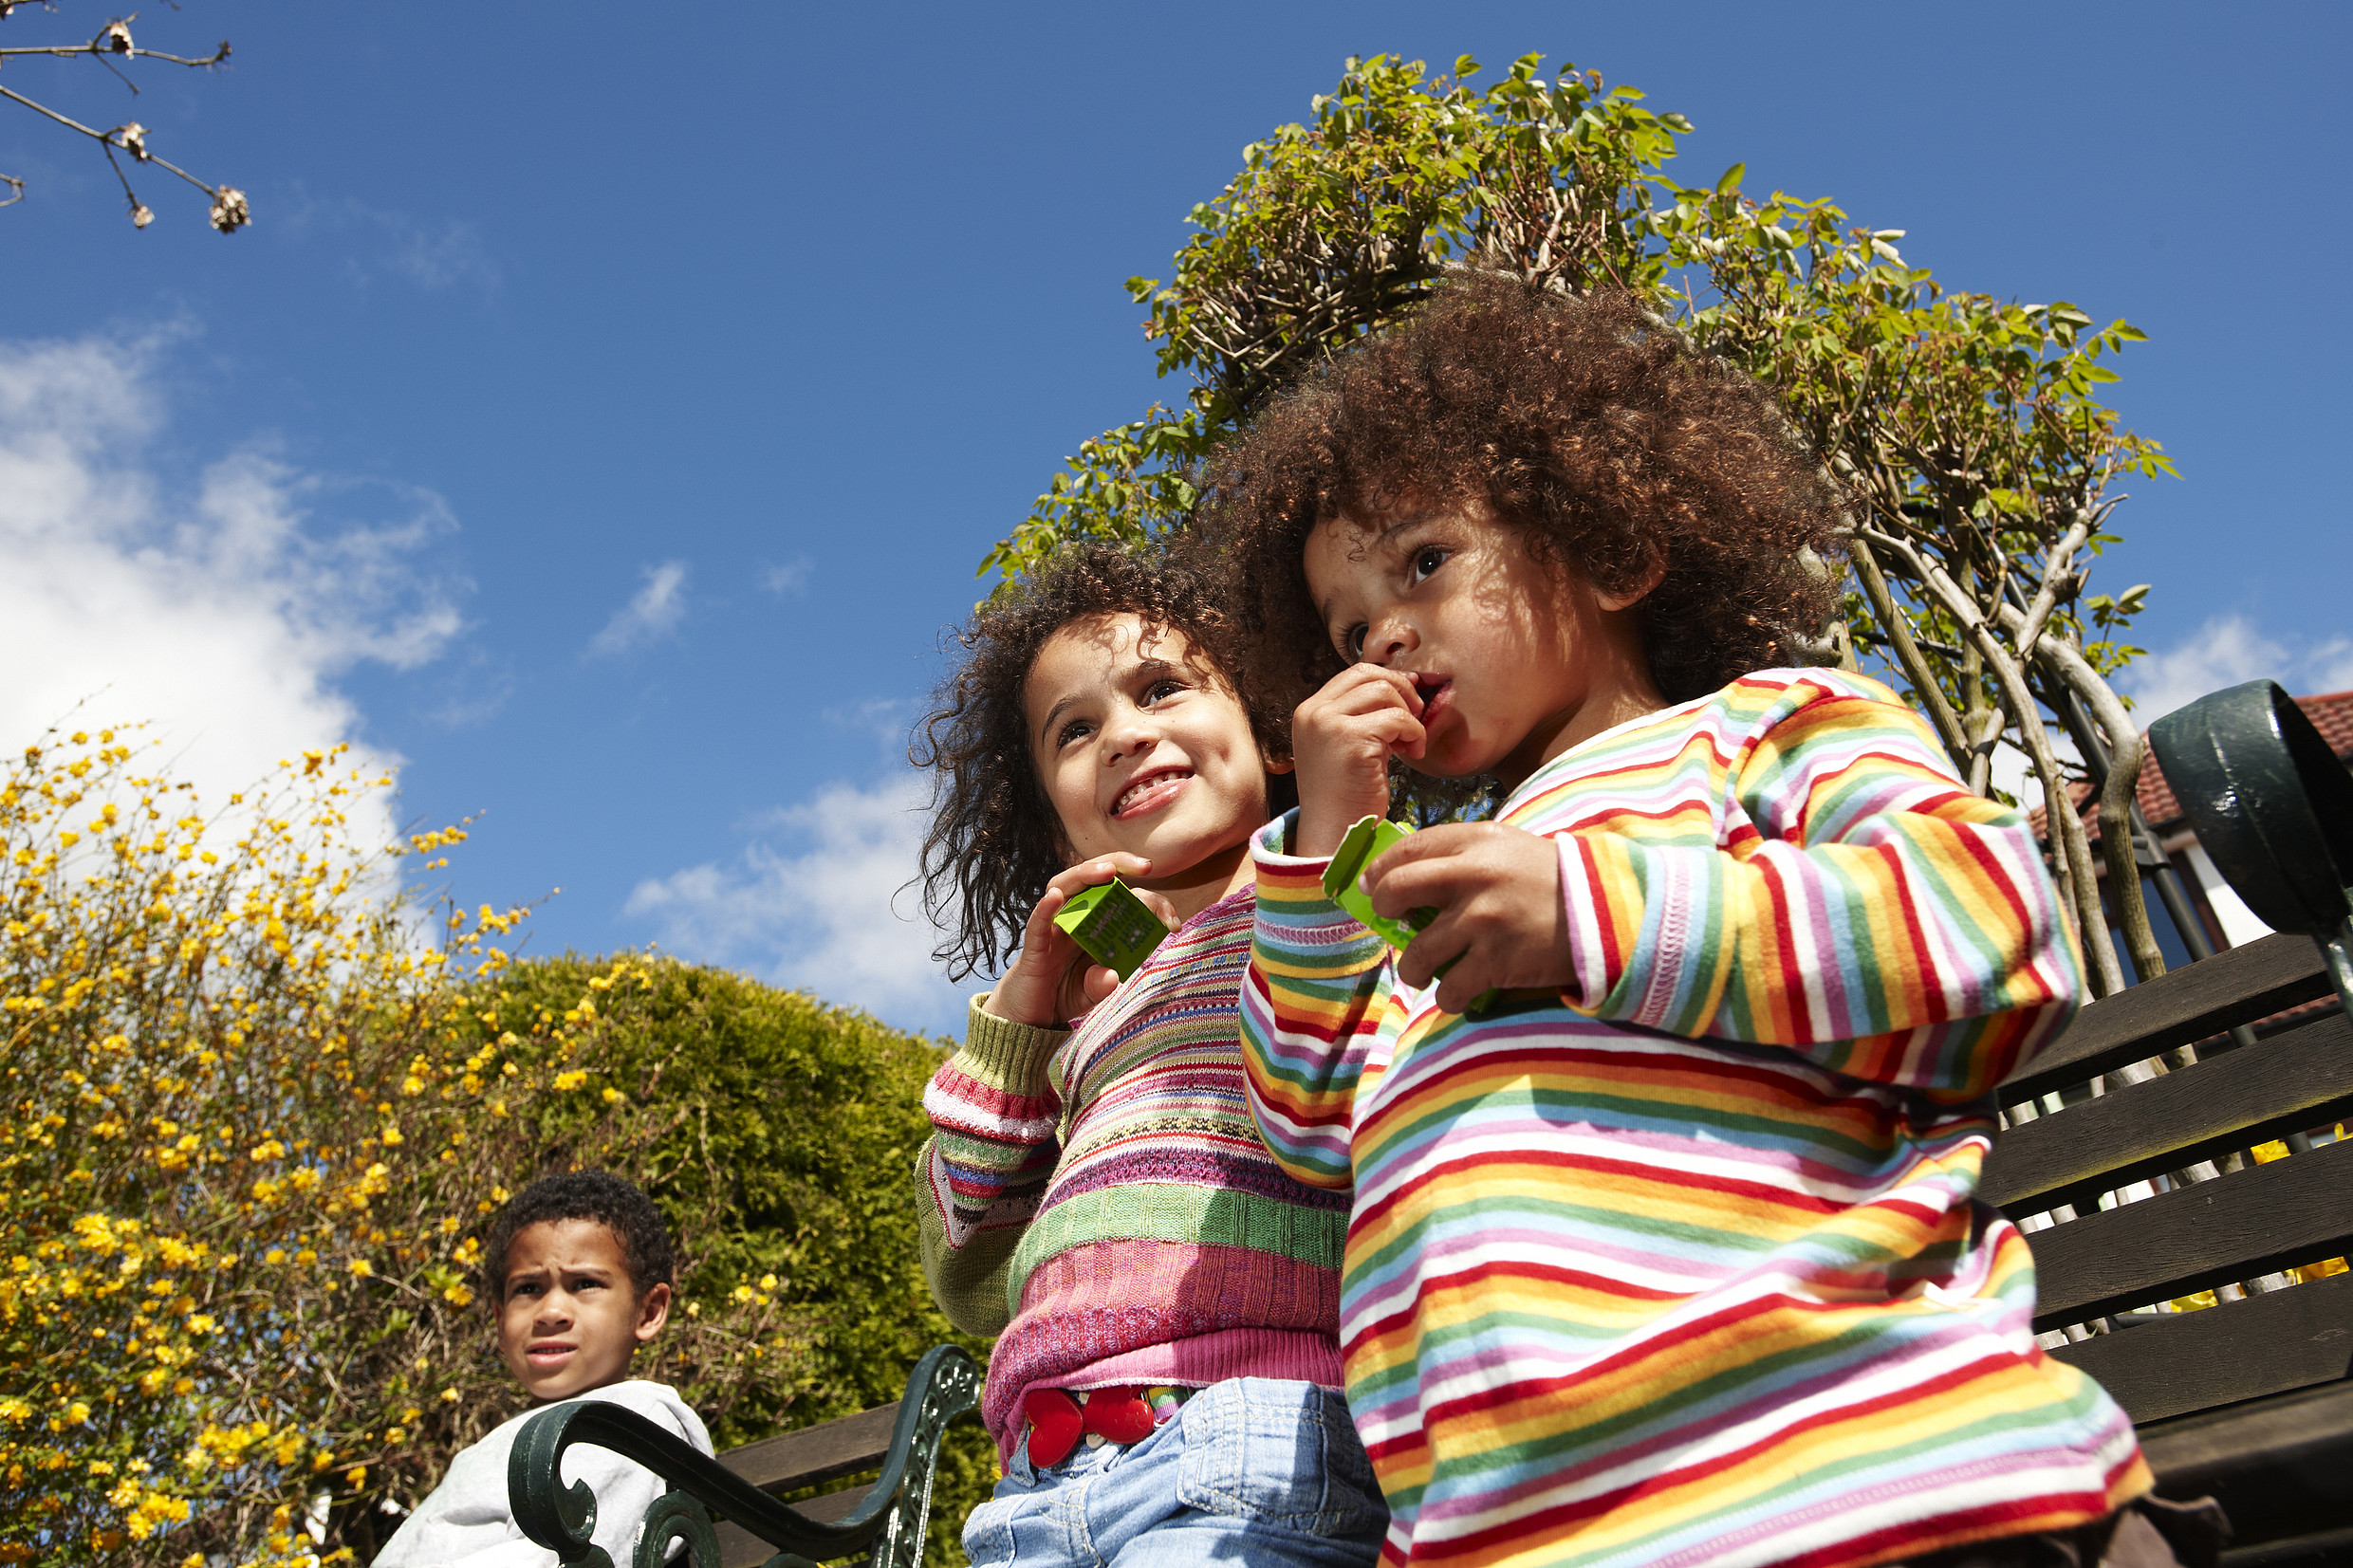 How to prevent childrens injuries Prevention of child injuries in pre-school and schools